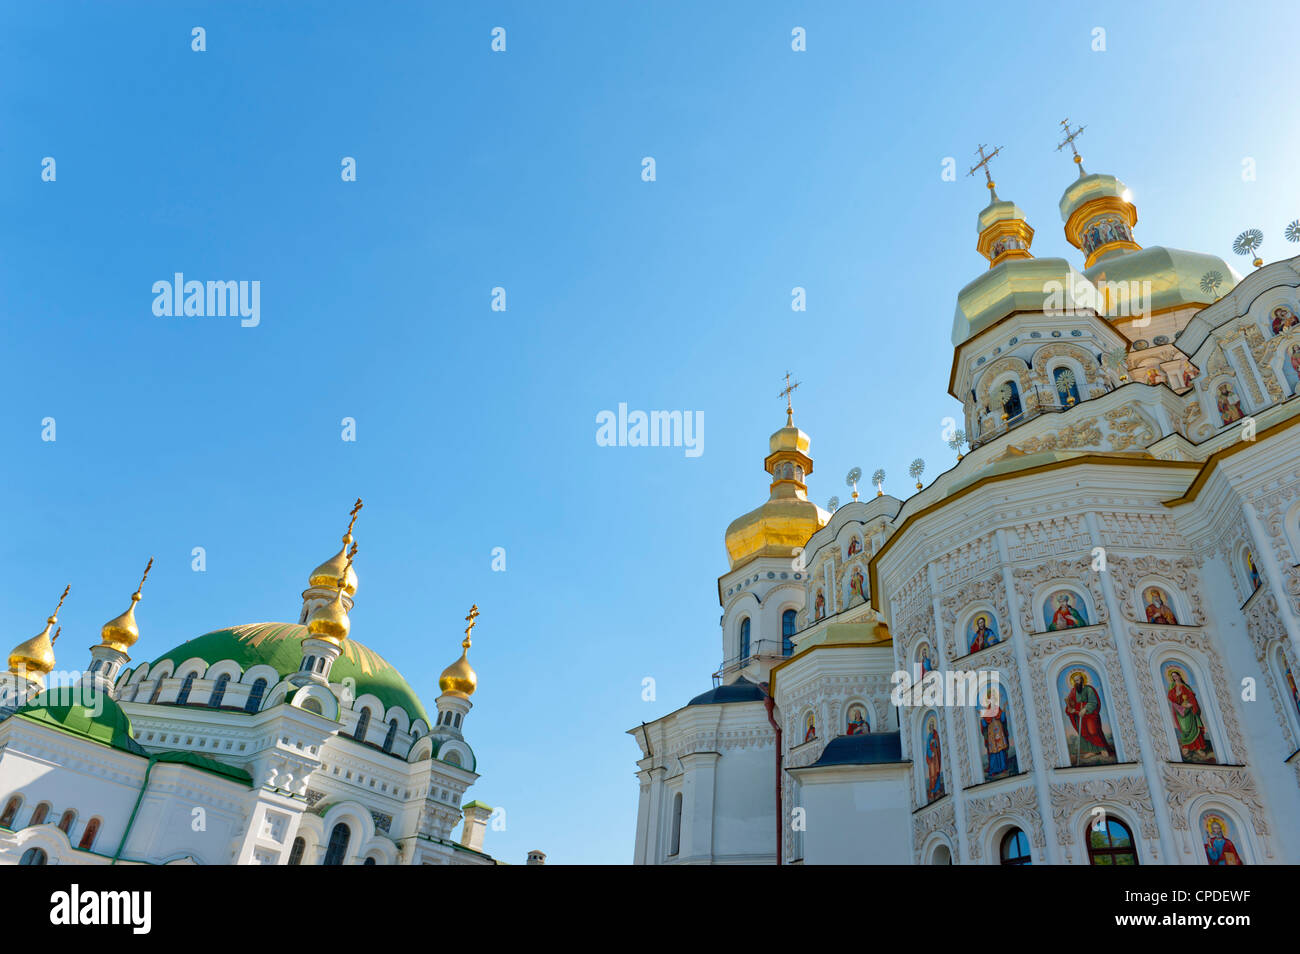 Kiev-Pechersk Lavra, UNESCO World Heritage Site, Kiev, Ukraine, Europe - Stock Image